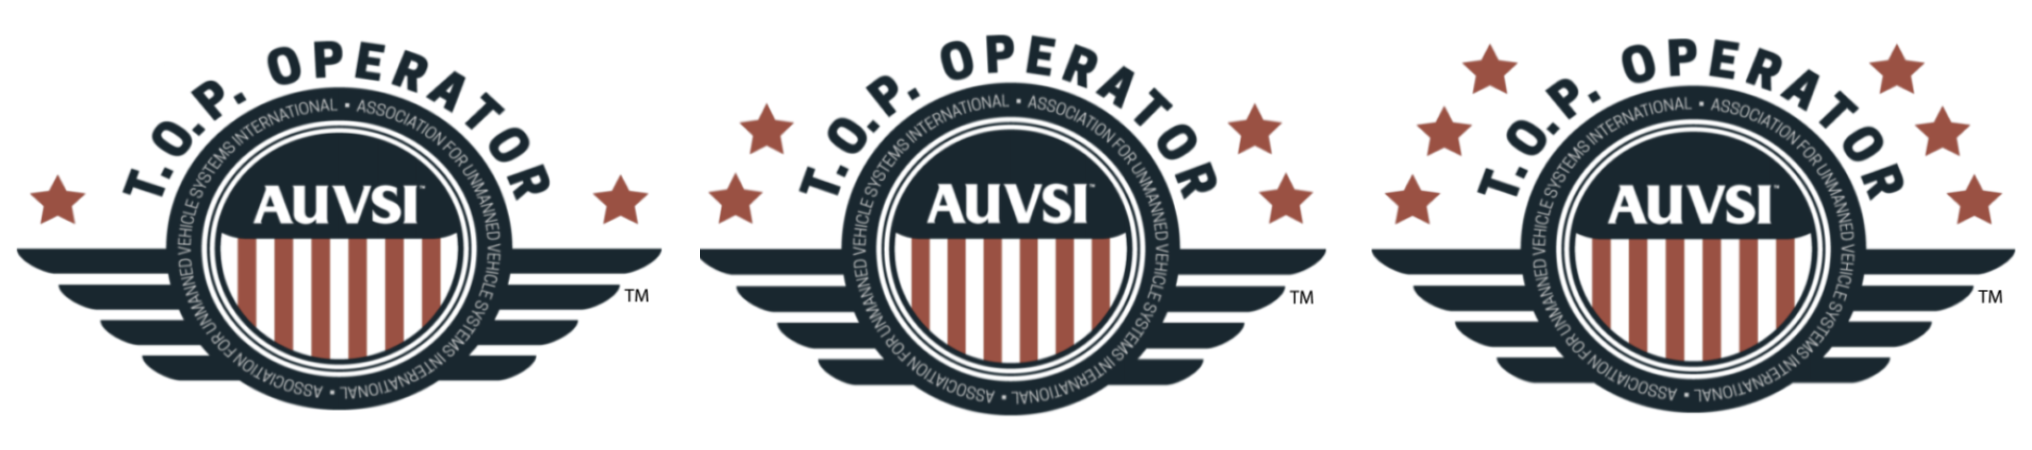 Trusted Operator Program Levels 1, 2 and 3.